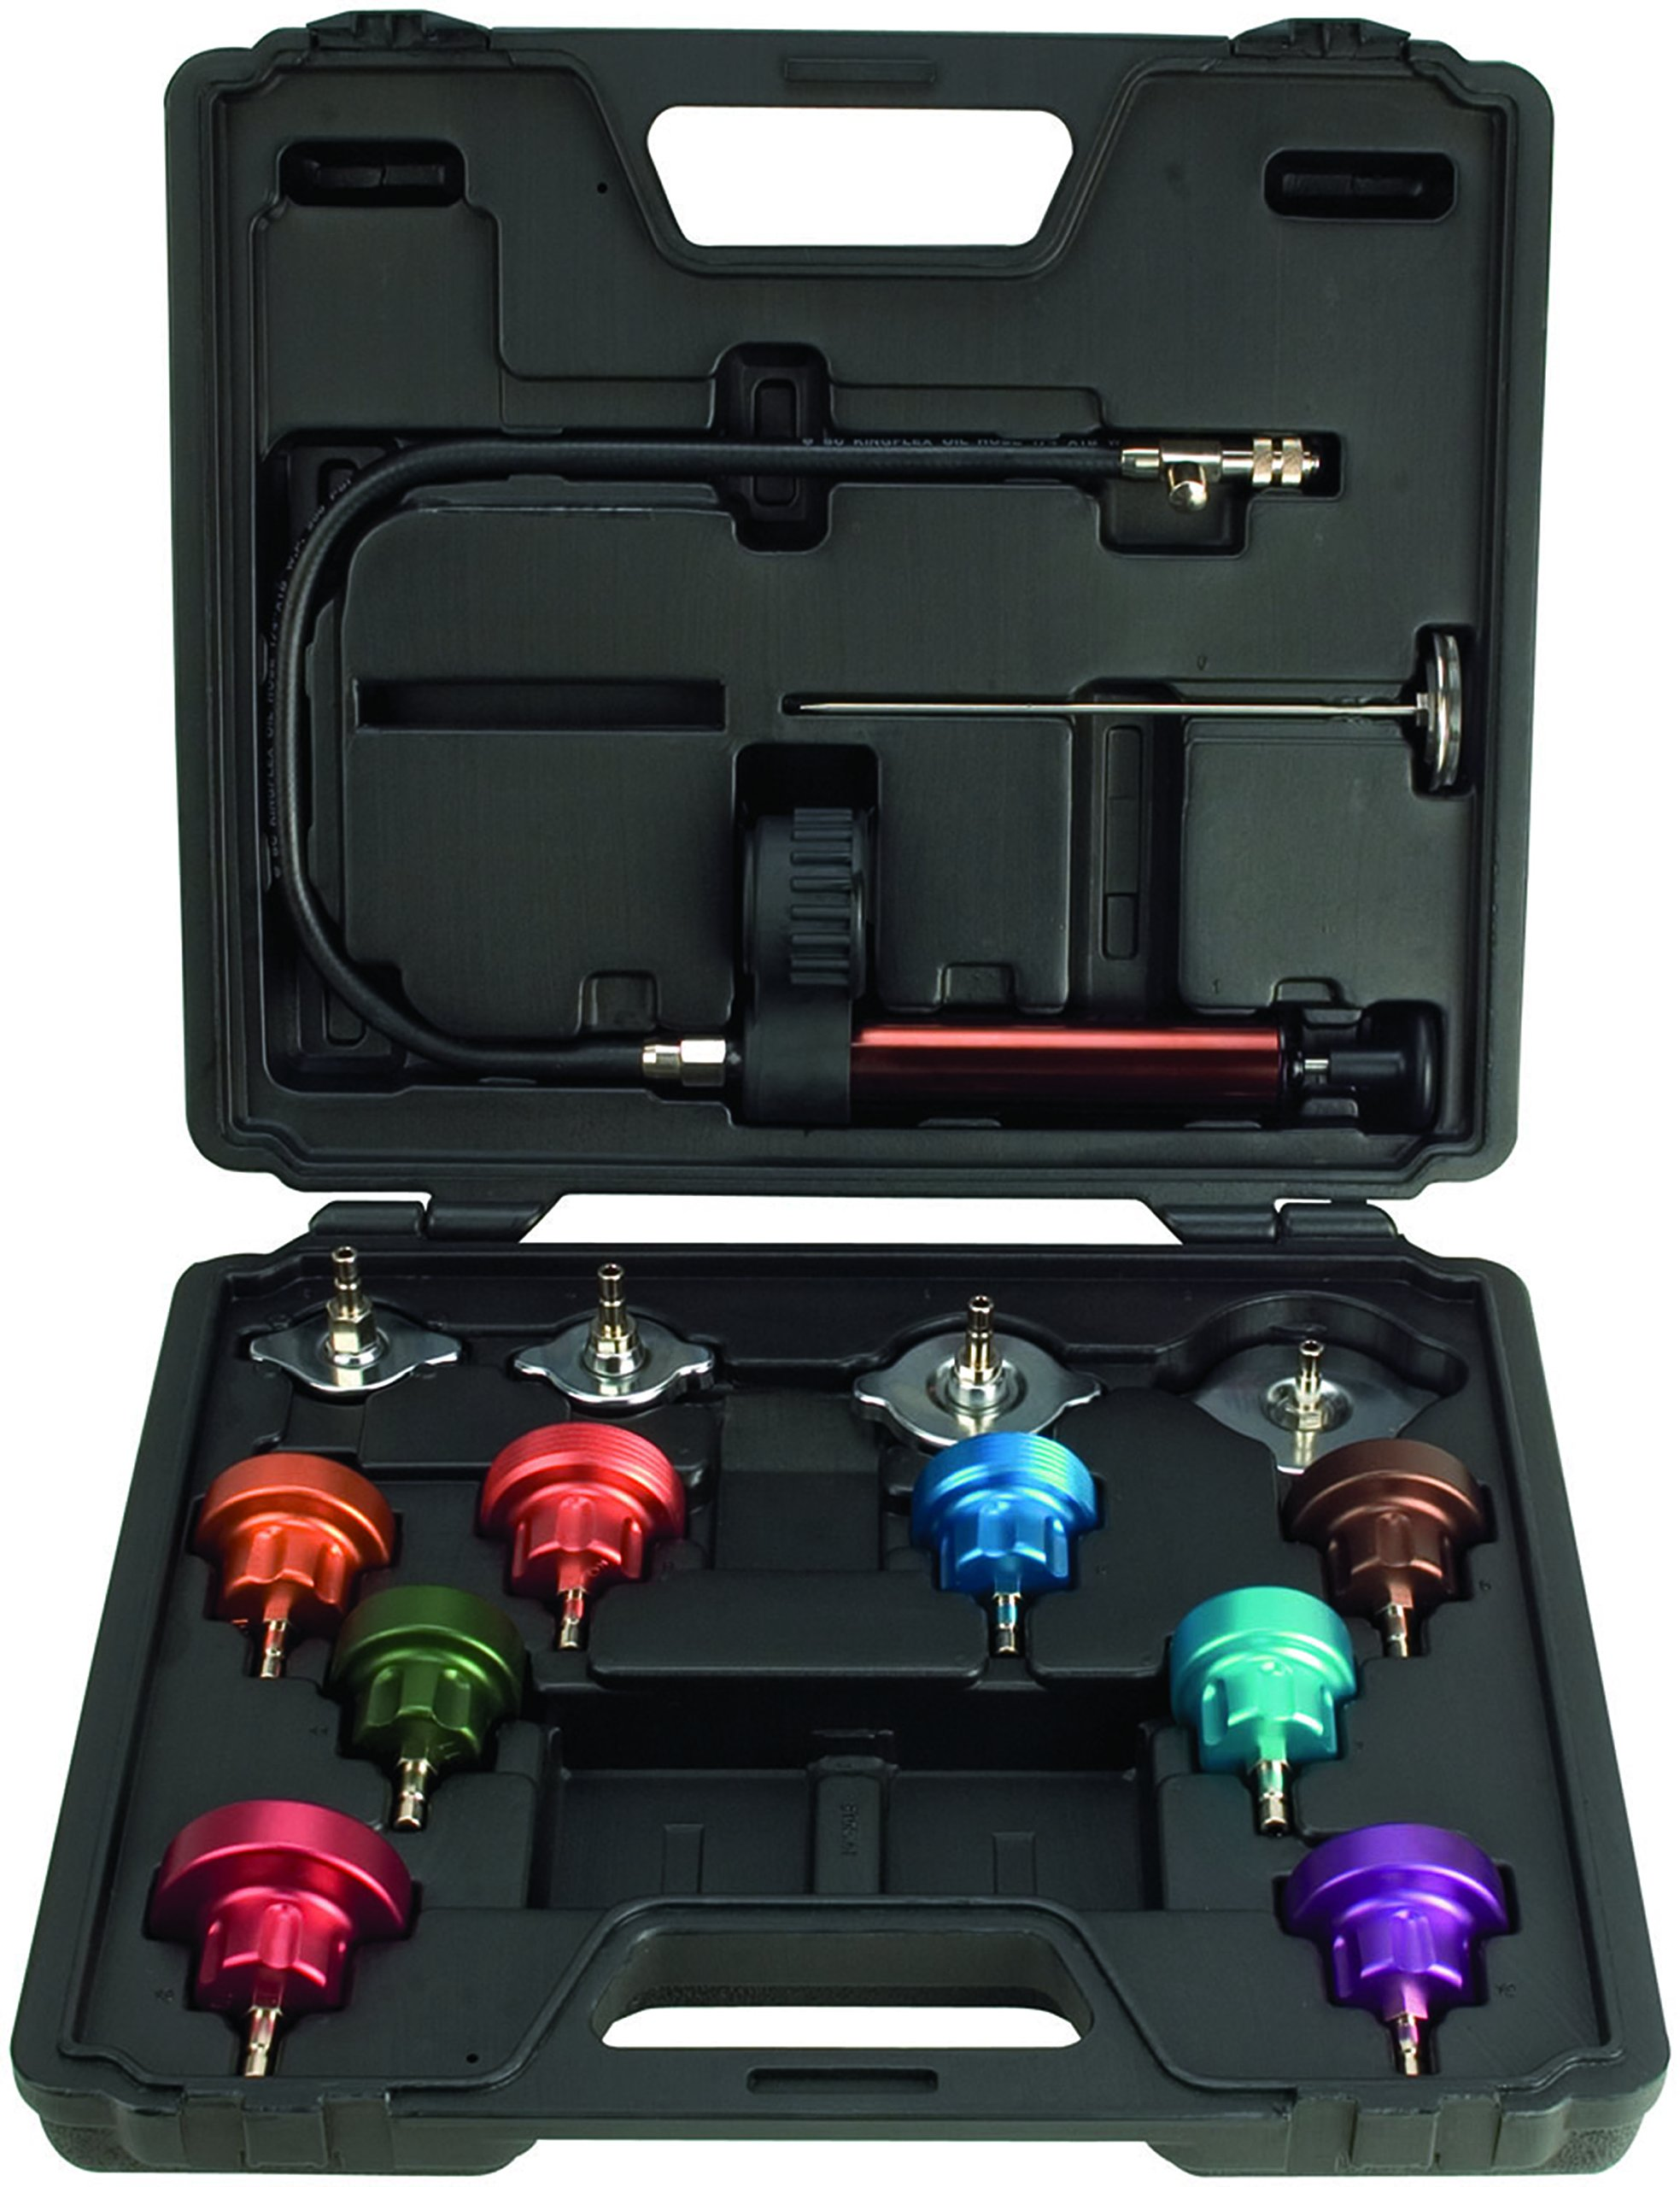 STEELMAN 97332 Deluxe Cooling System Test Kit